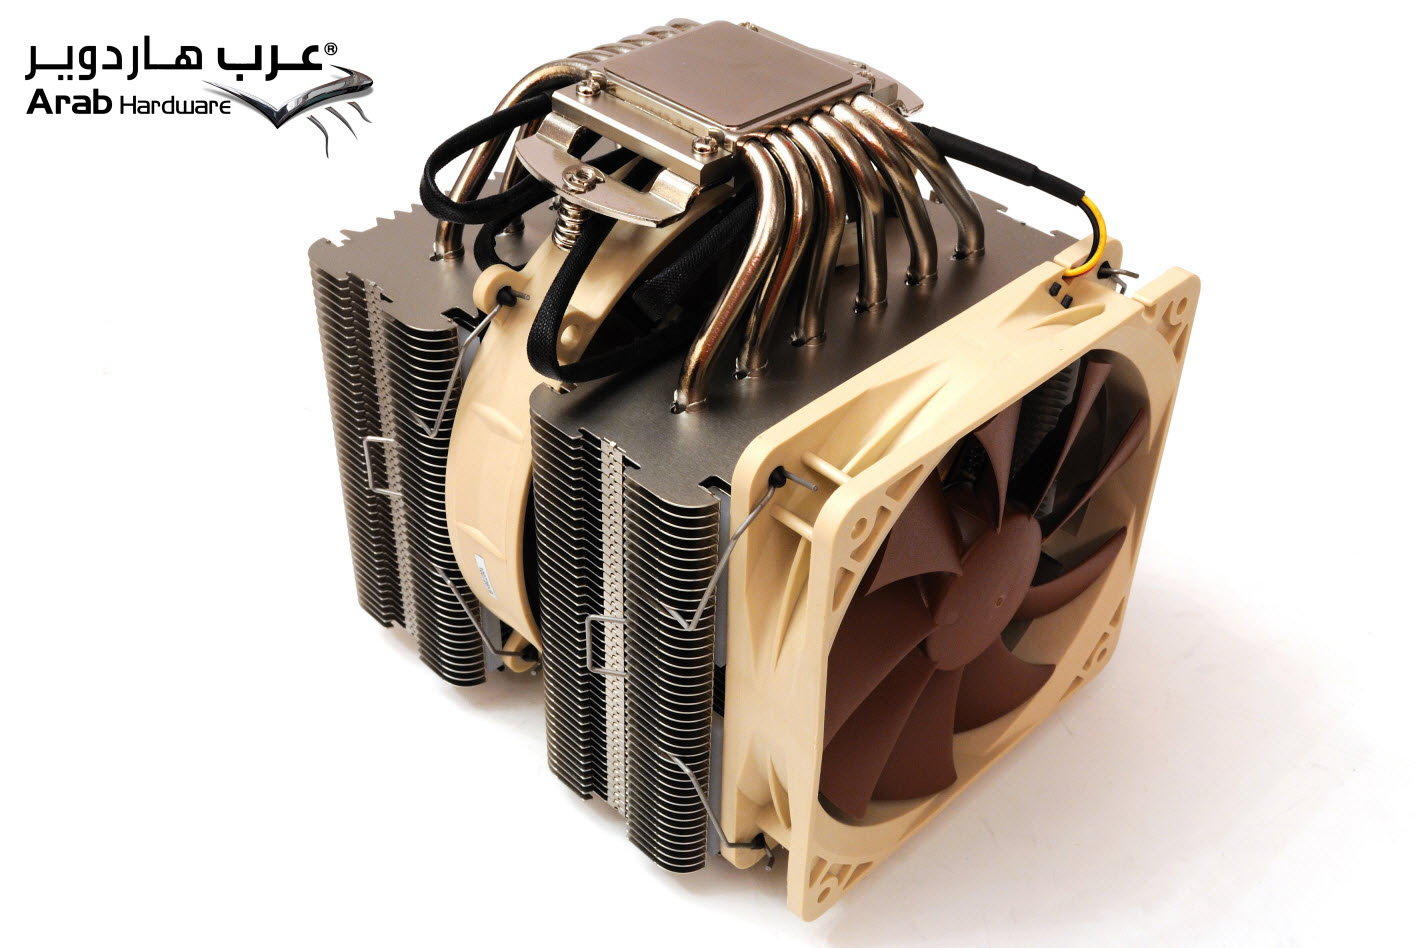 Noctua NH-D14 Review Arabhardware.net